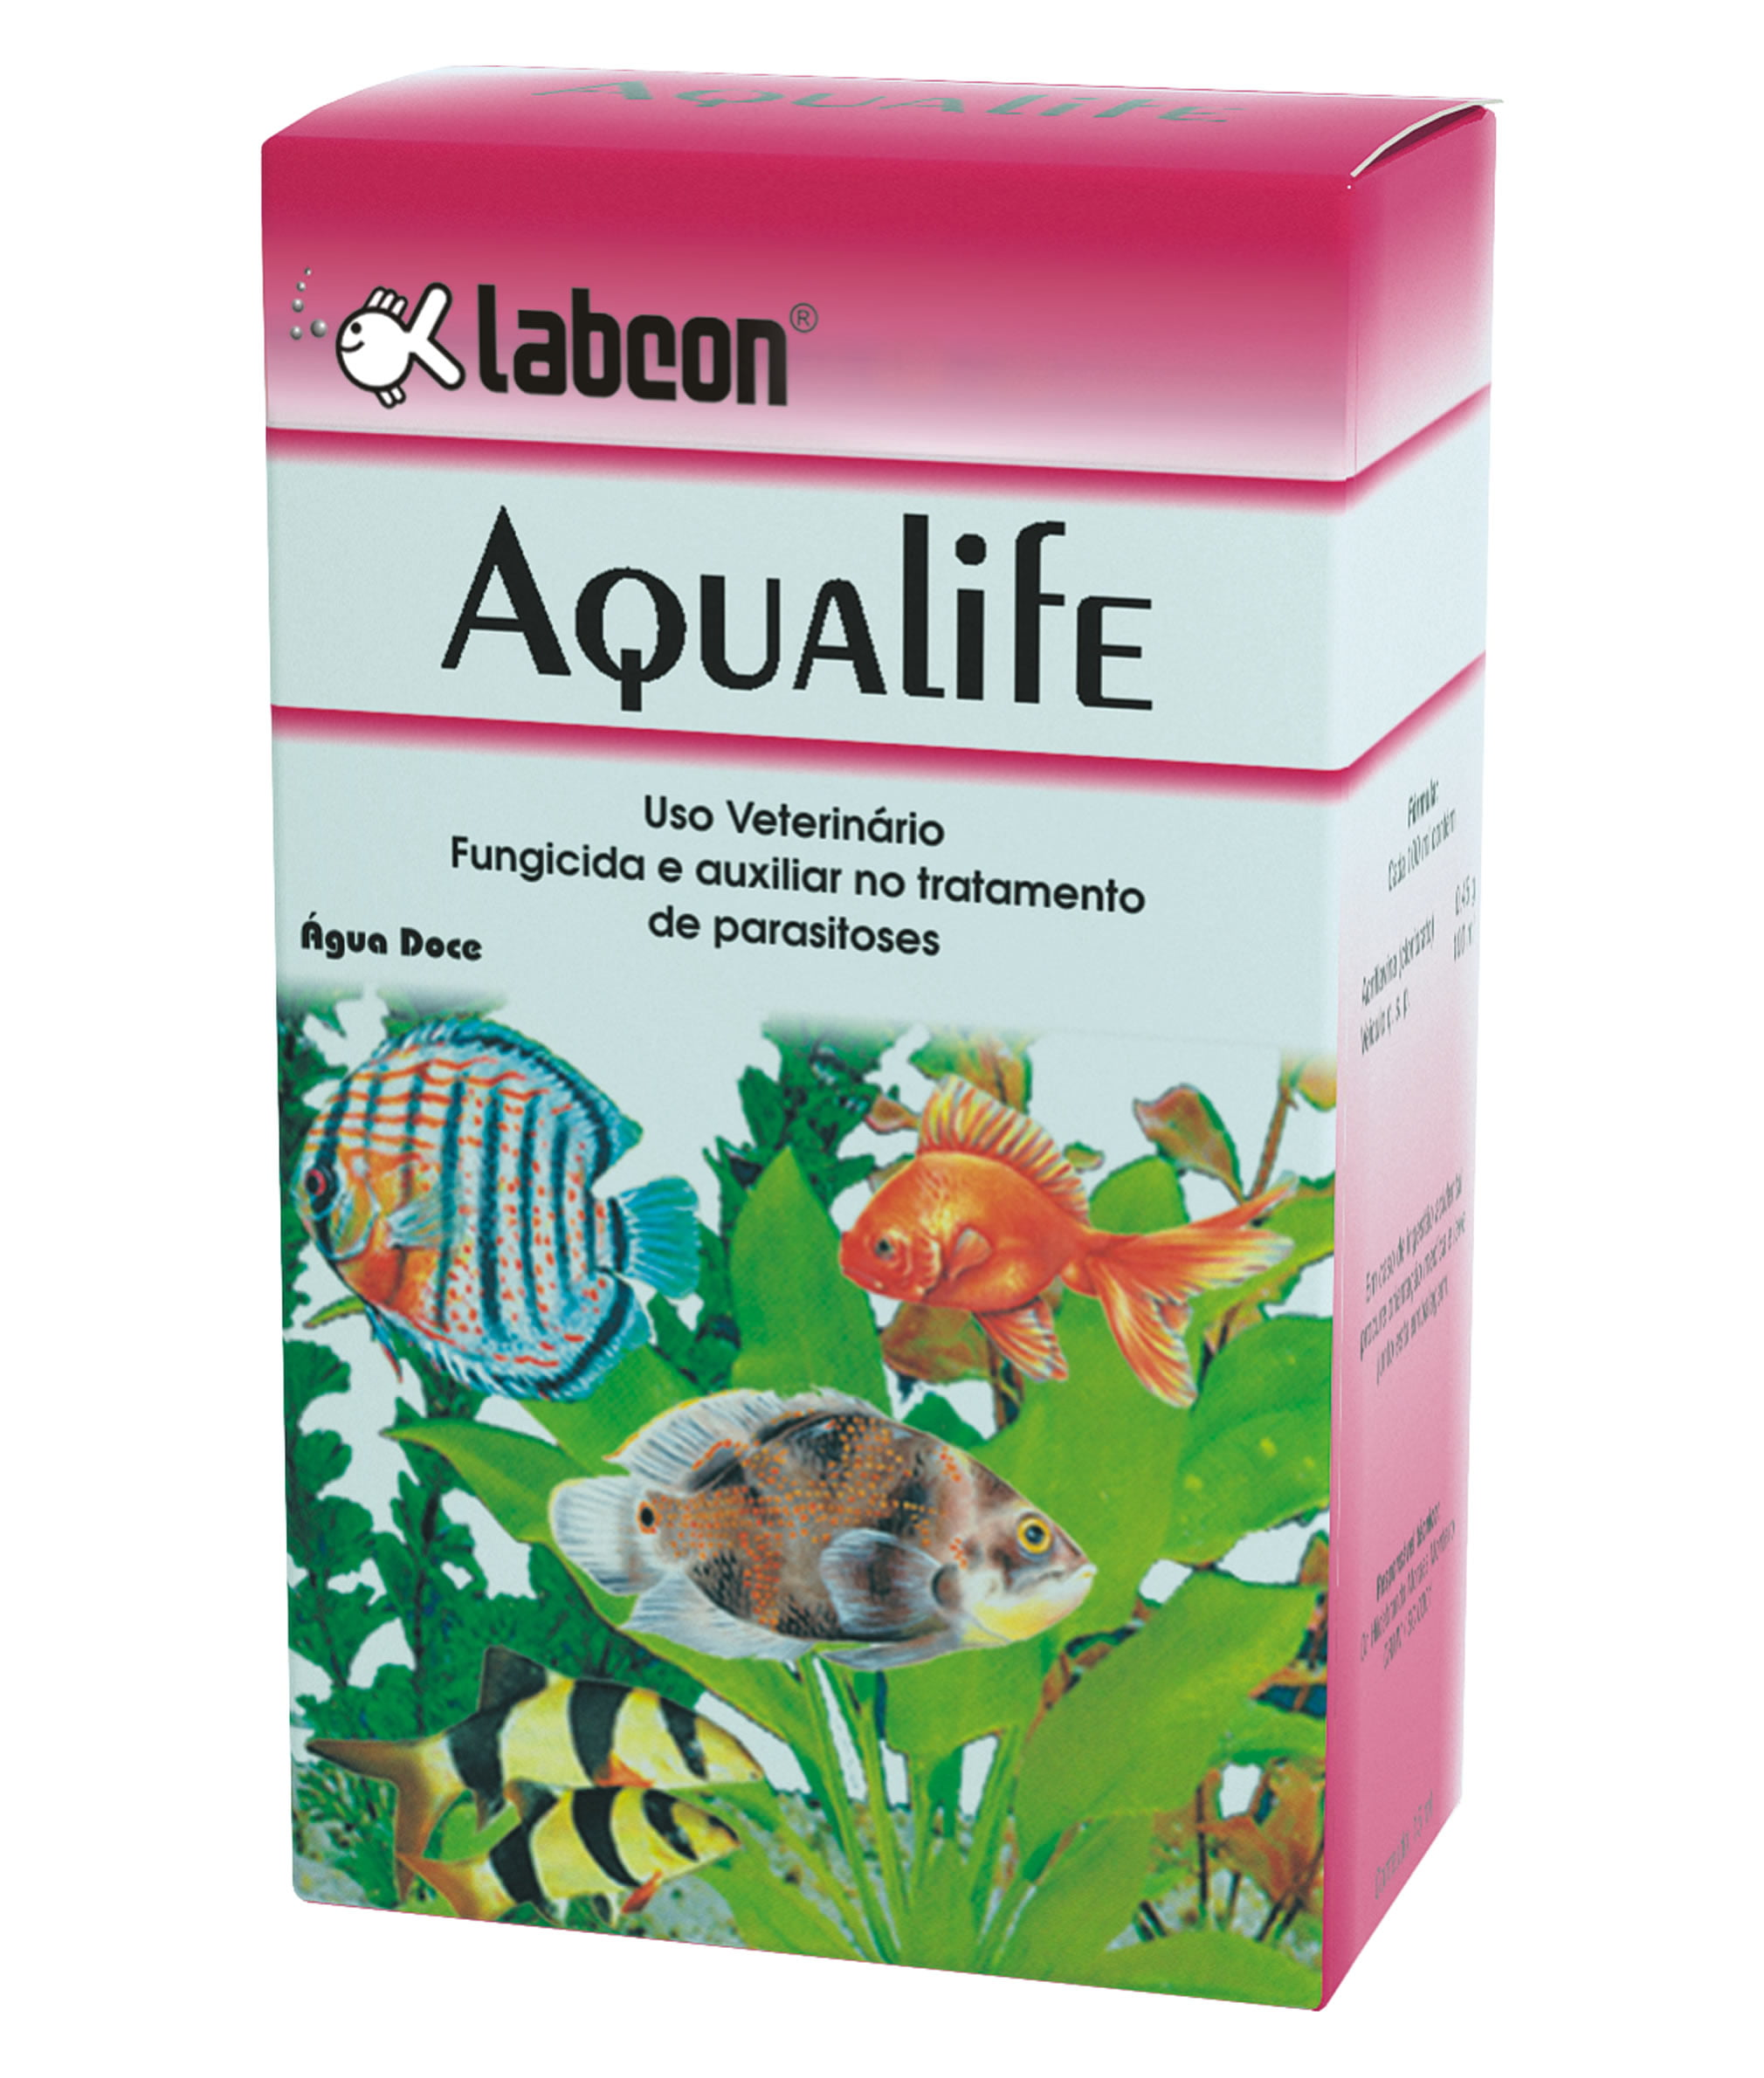 Fungicida Labcon Aqualife Alcon 15ml